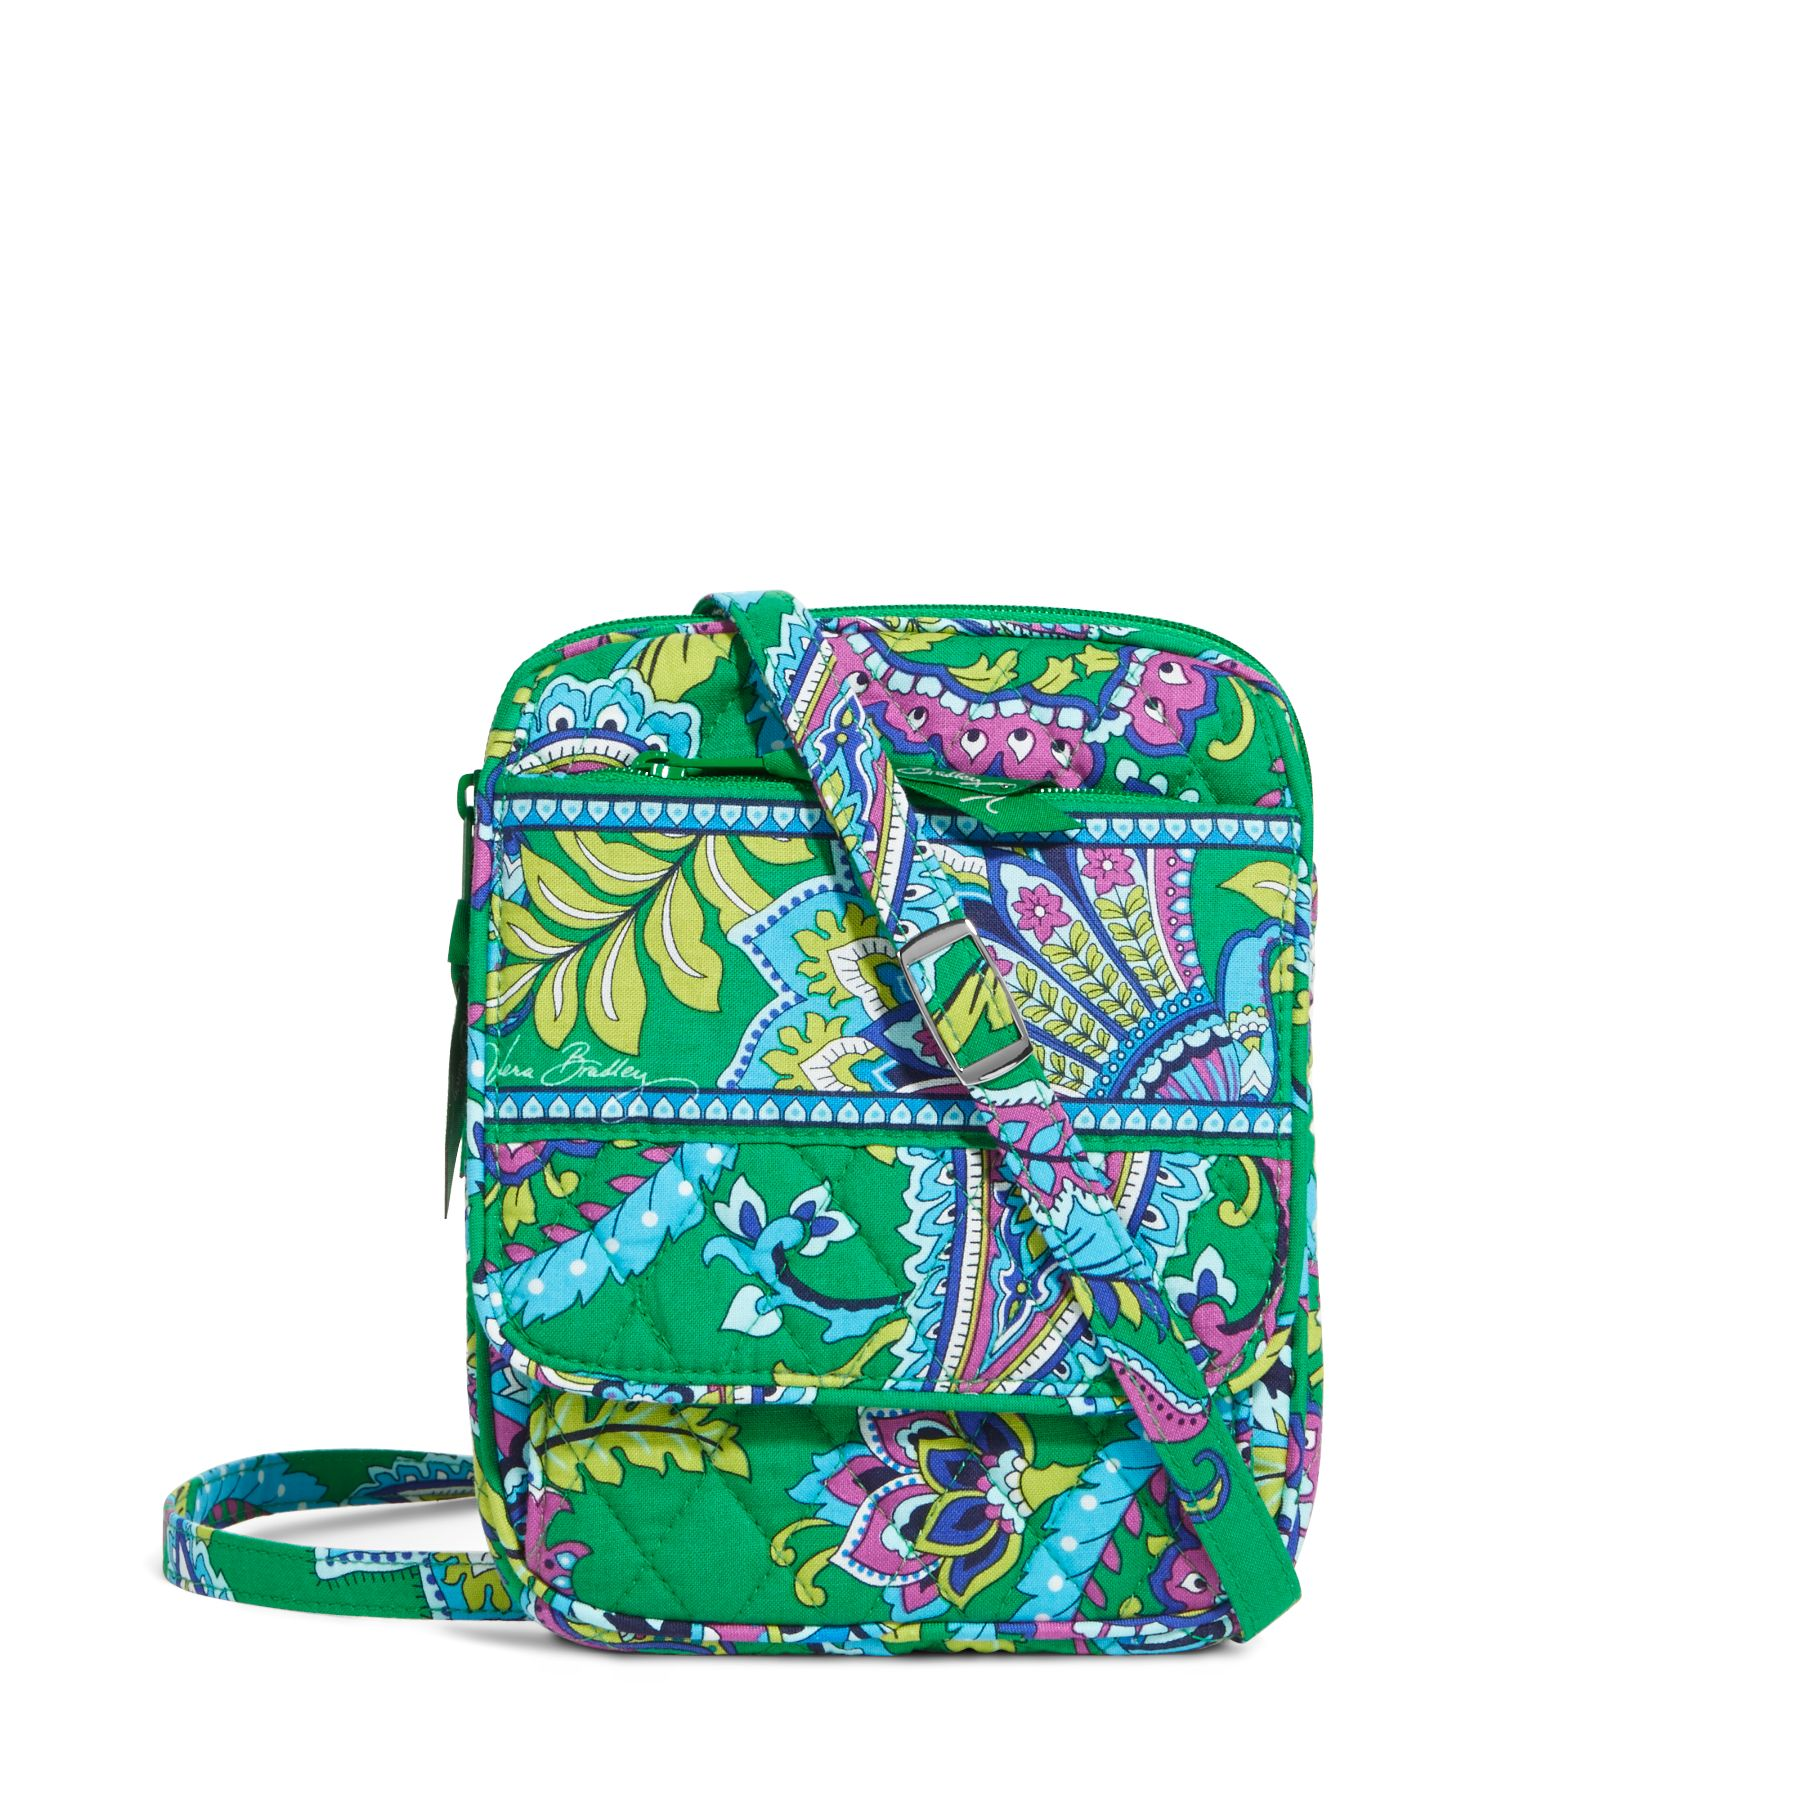 Vera Bradley Mini Hipster Crossbody in Emerald Paisley